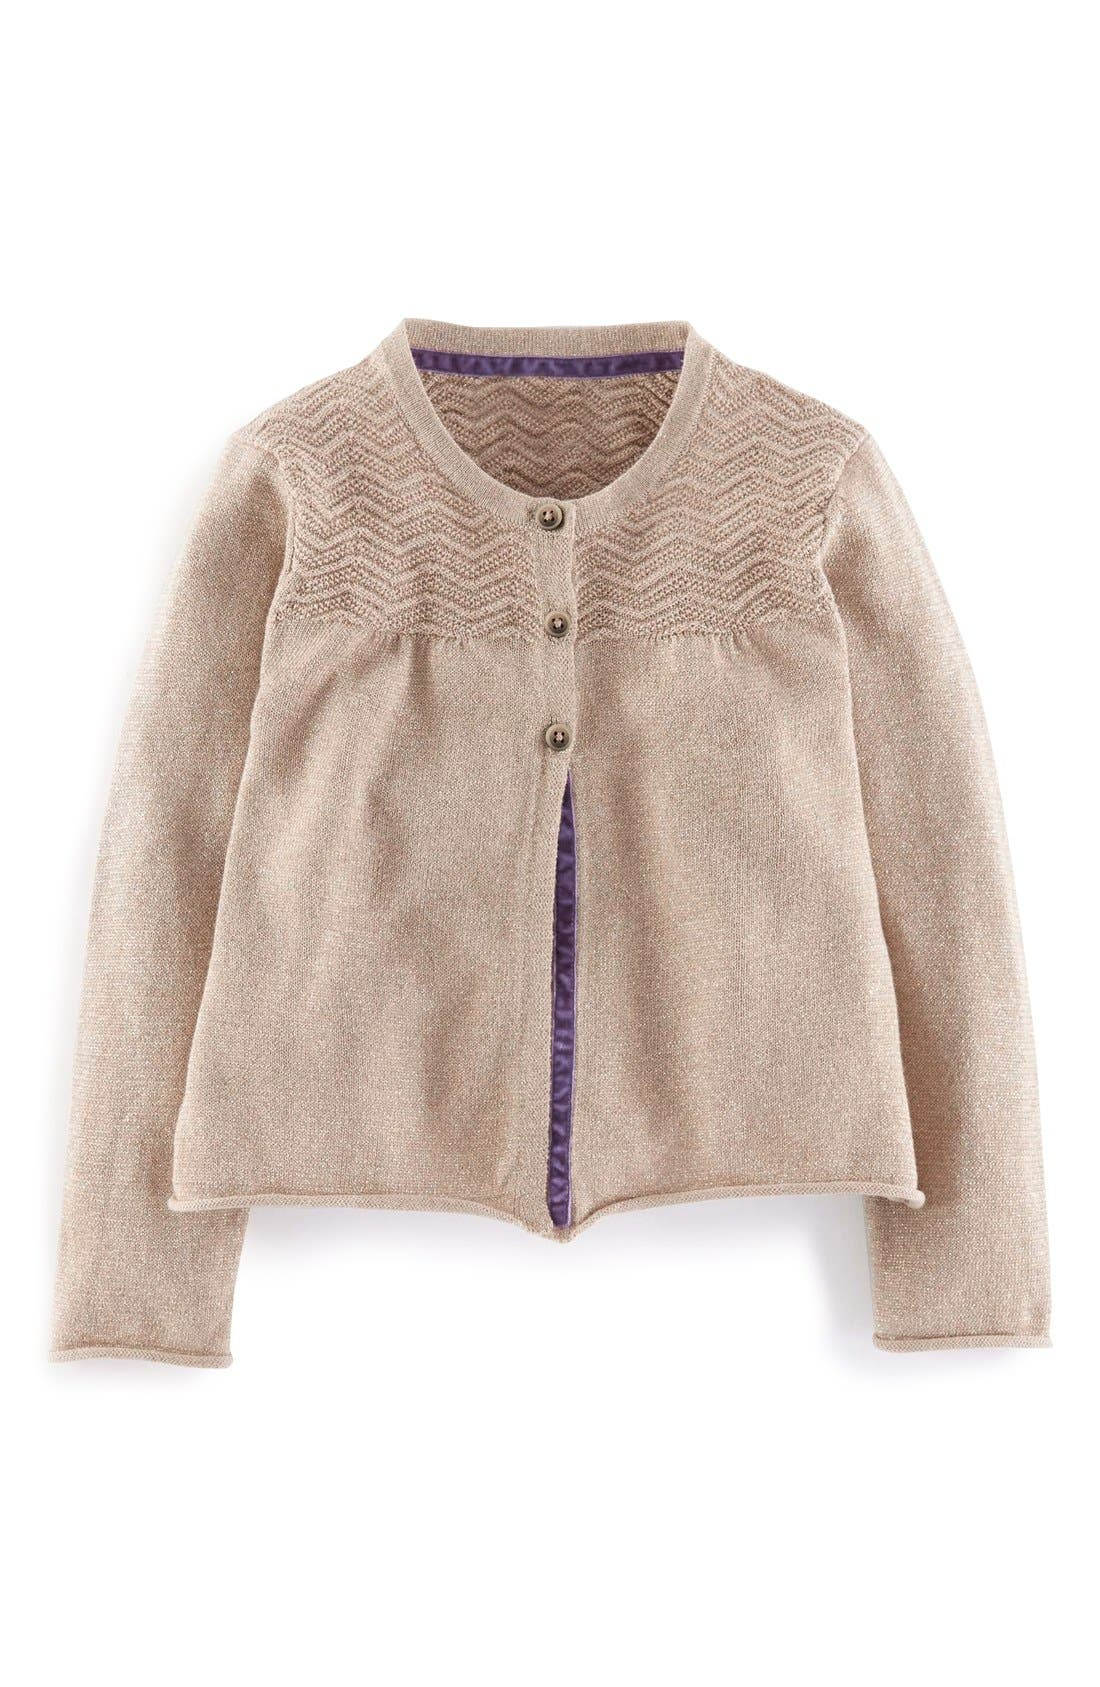 Alternate Image 1 Selected - Mini Boden Cotton & Cashmere Cardigan (Toddler, Little Girls & Big Girls)